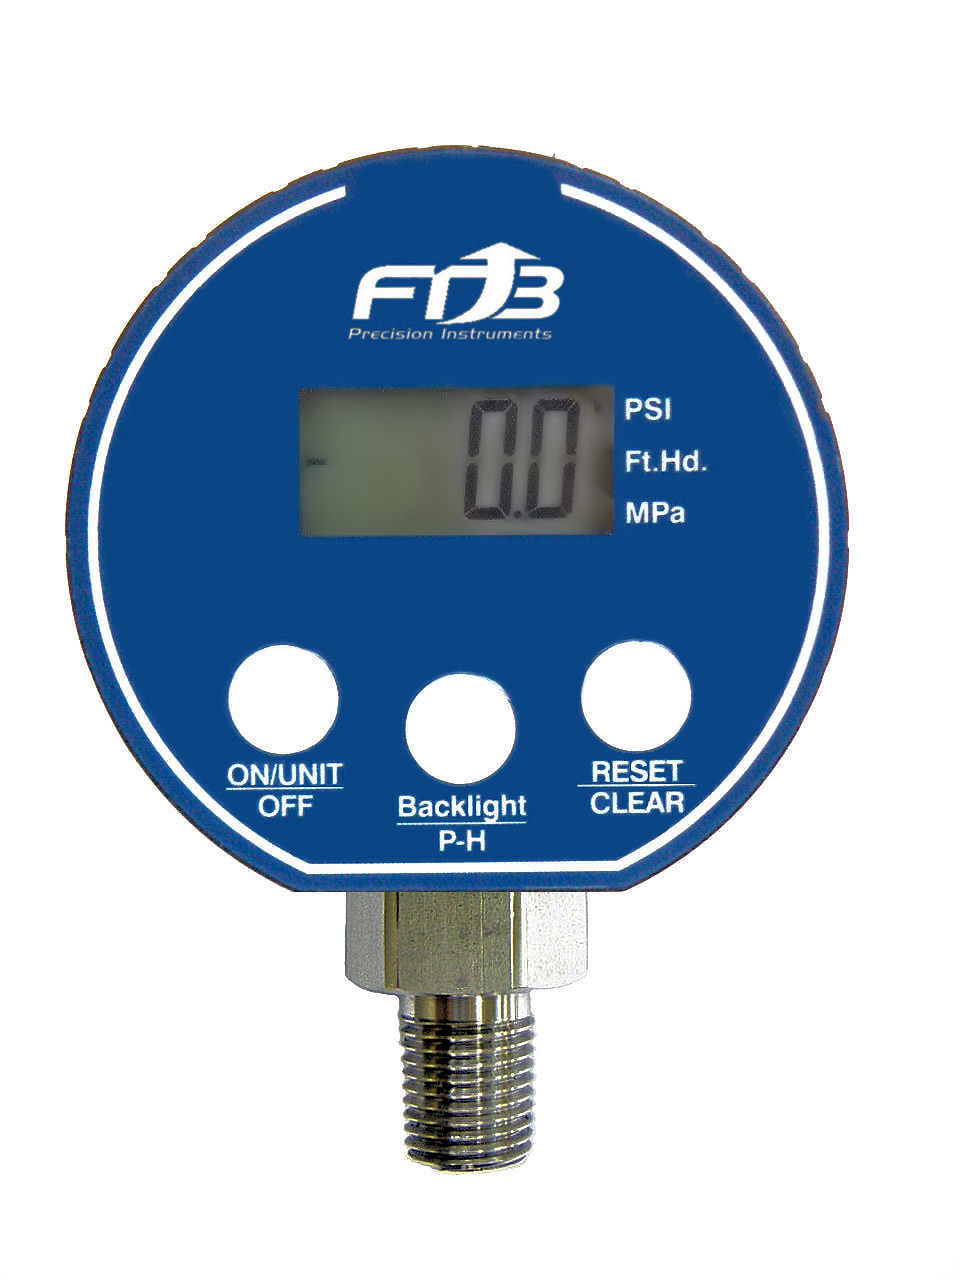 Battery-Powered Digital Pressure Gauges